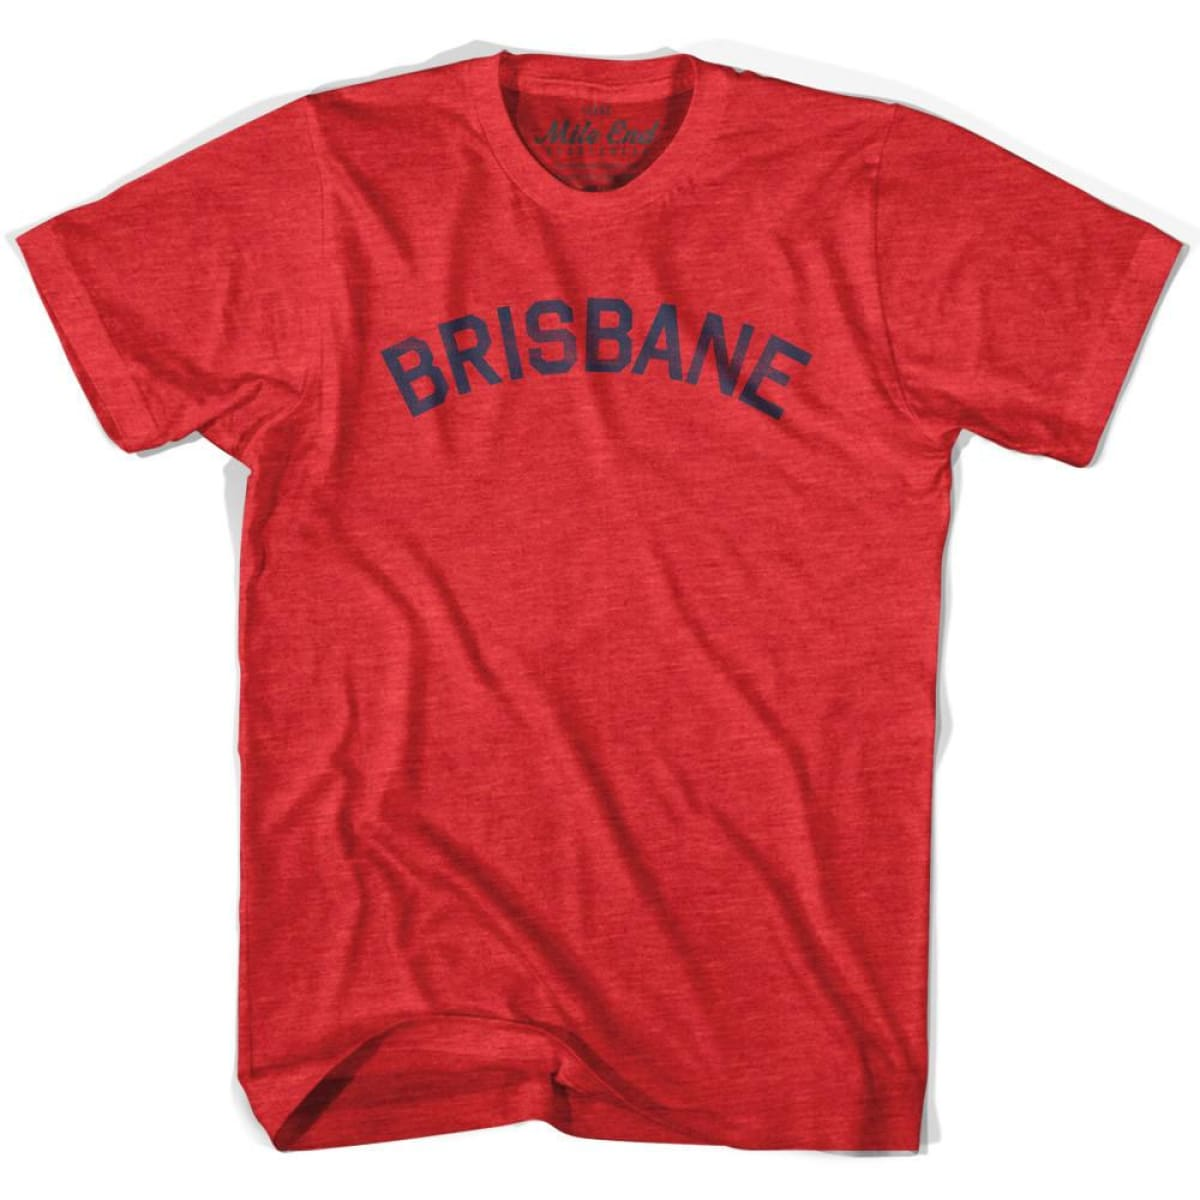 Brisbane City Vintage T-shirt - Heather Red / Adult X-Small - Mile End City